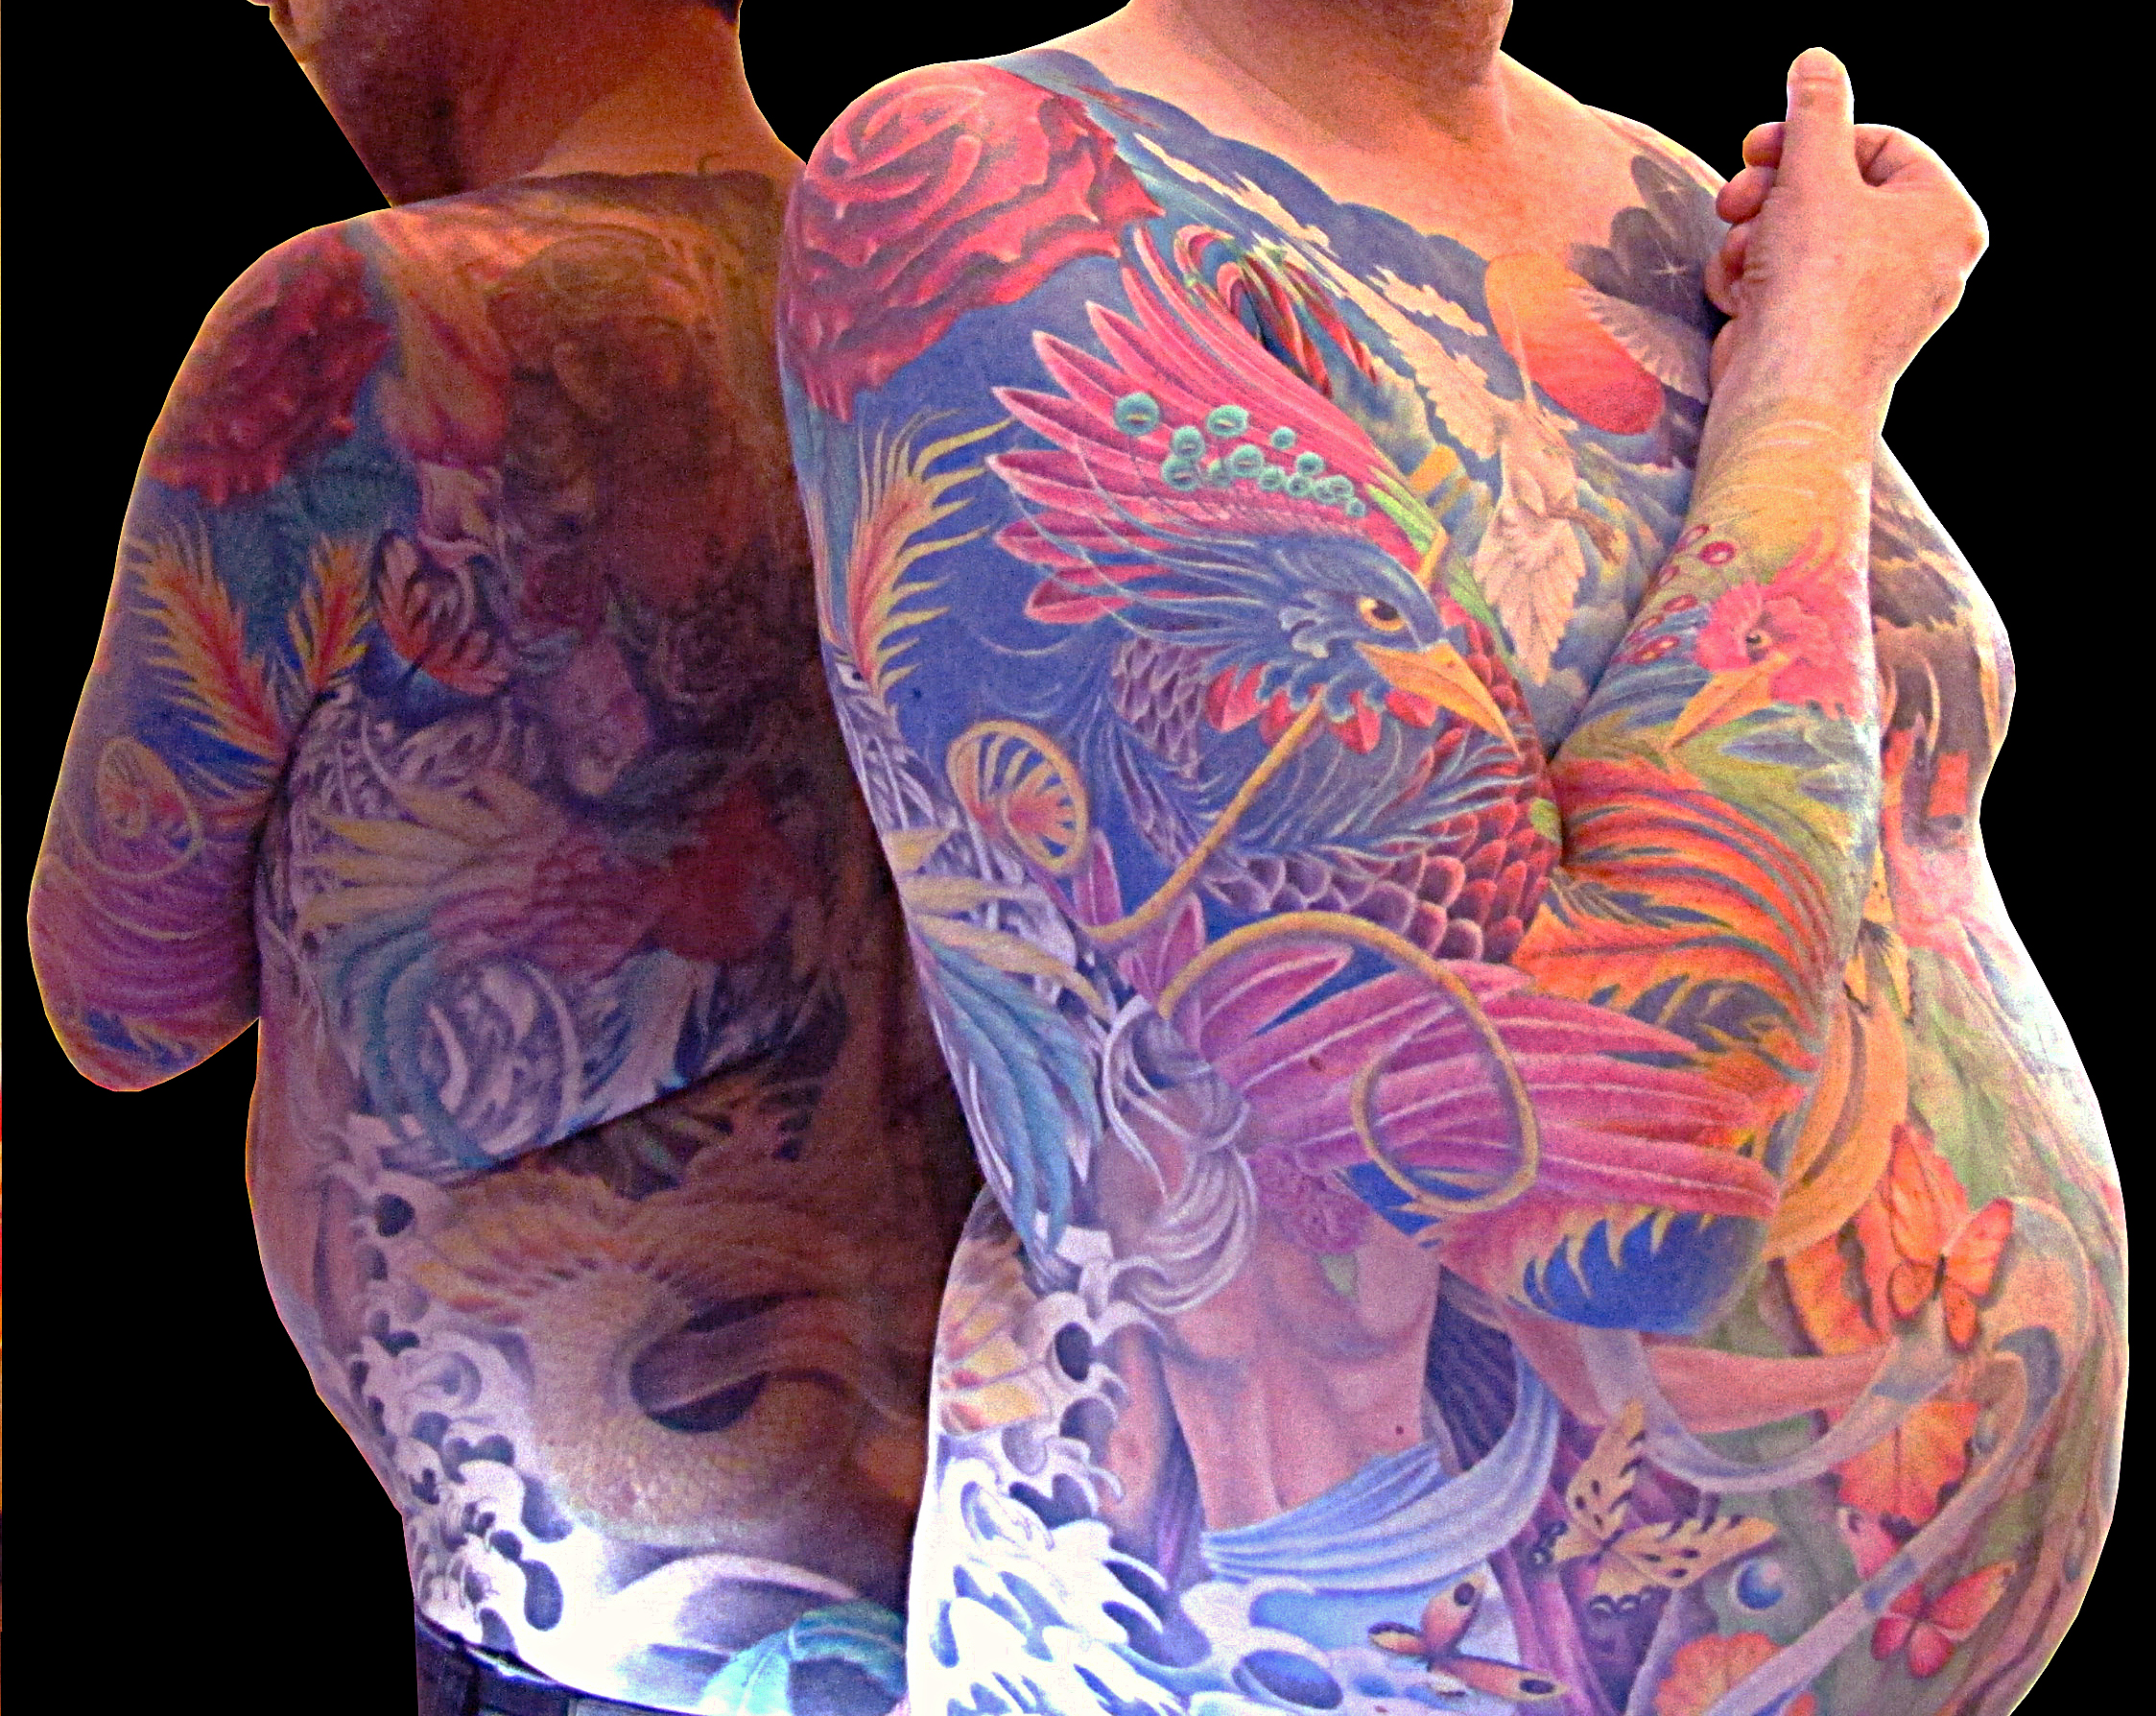 Filephoenix Full Sleeve Tattoo By Maaika Jpg